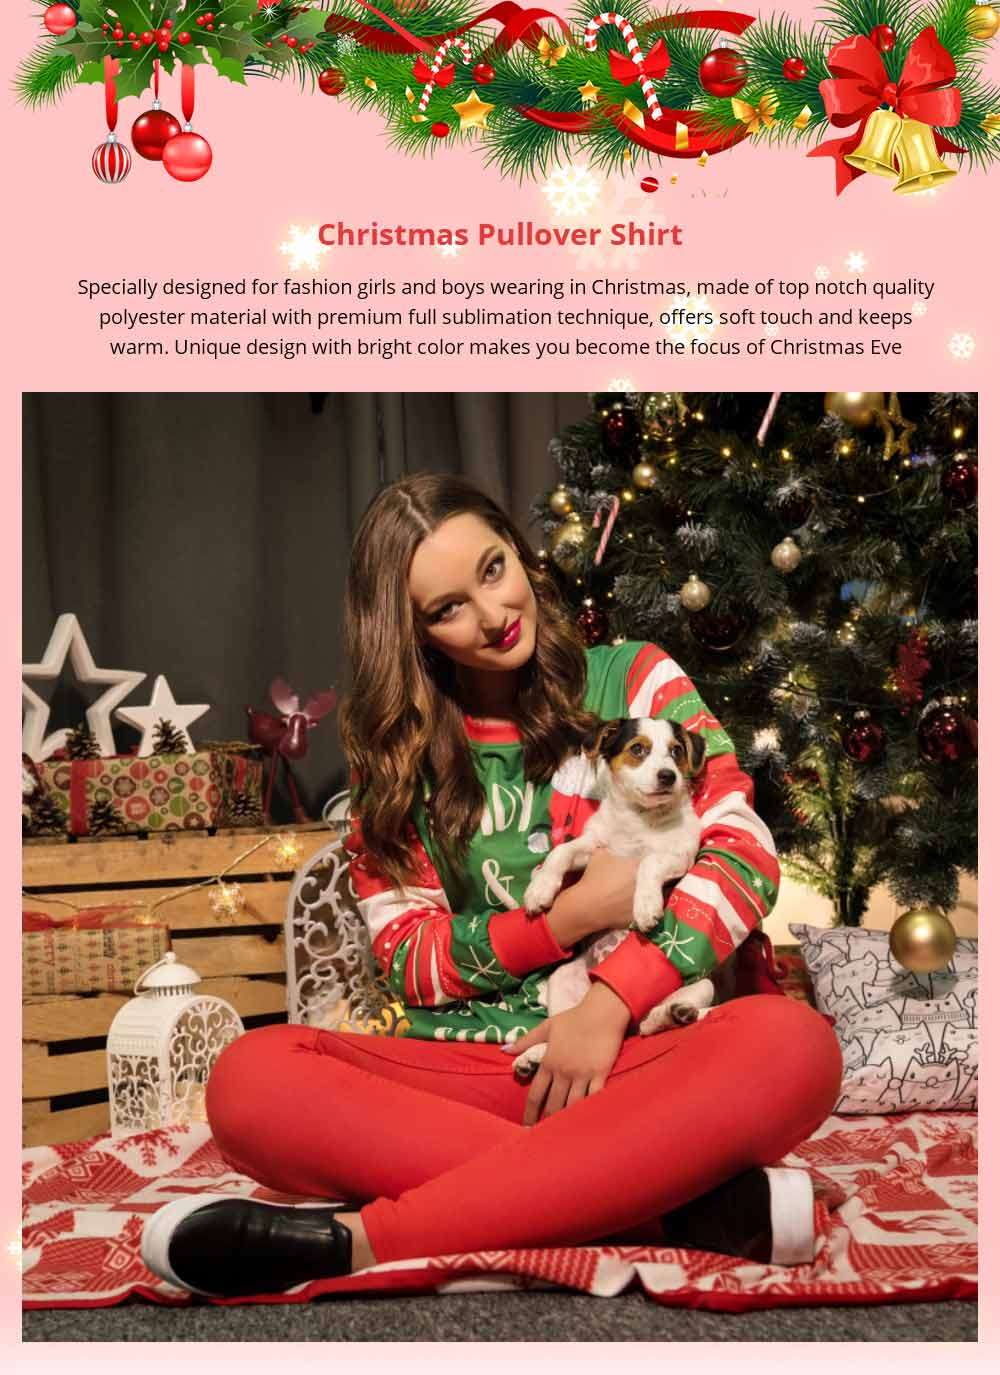 Unisex Christmas Pullover Shirt Polyester Full Sublimation Christmas Long Sleeve Shirt, Non-fading Warm Christmas Sweater Tops 6